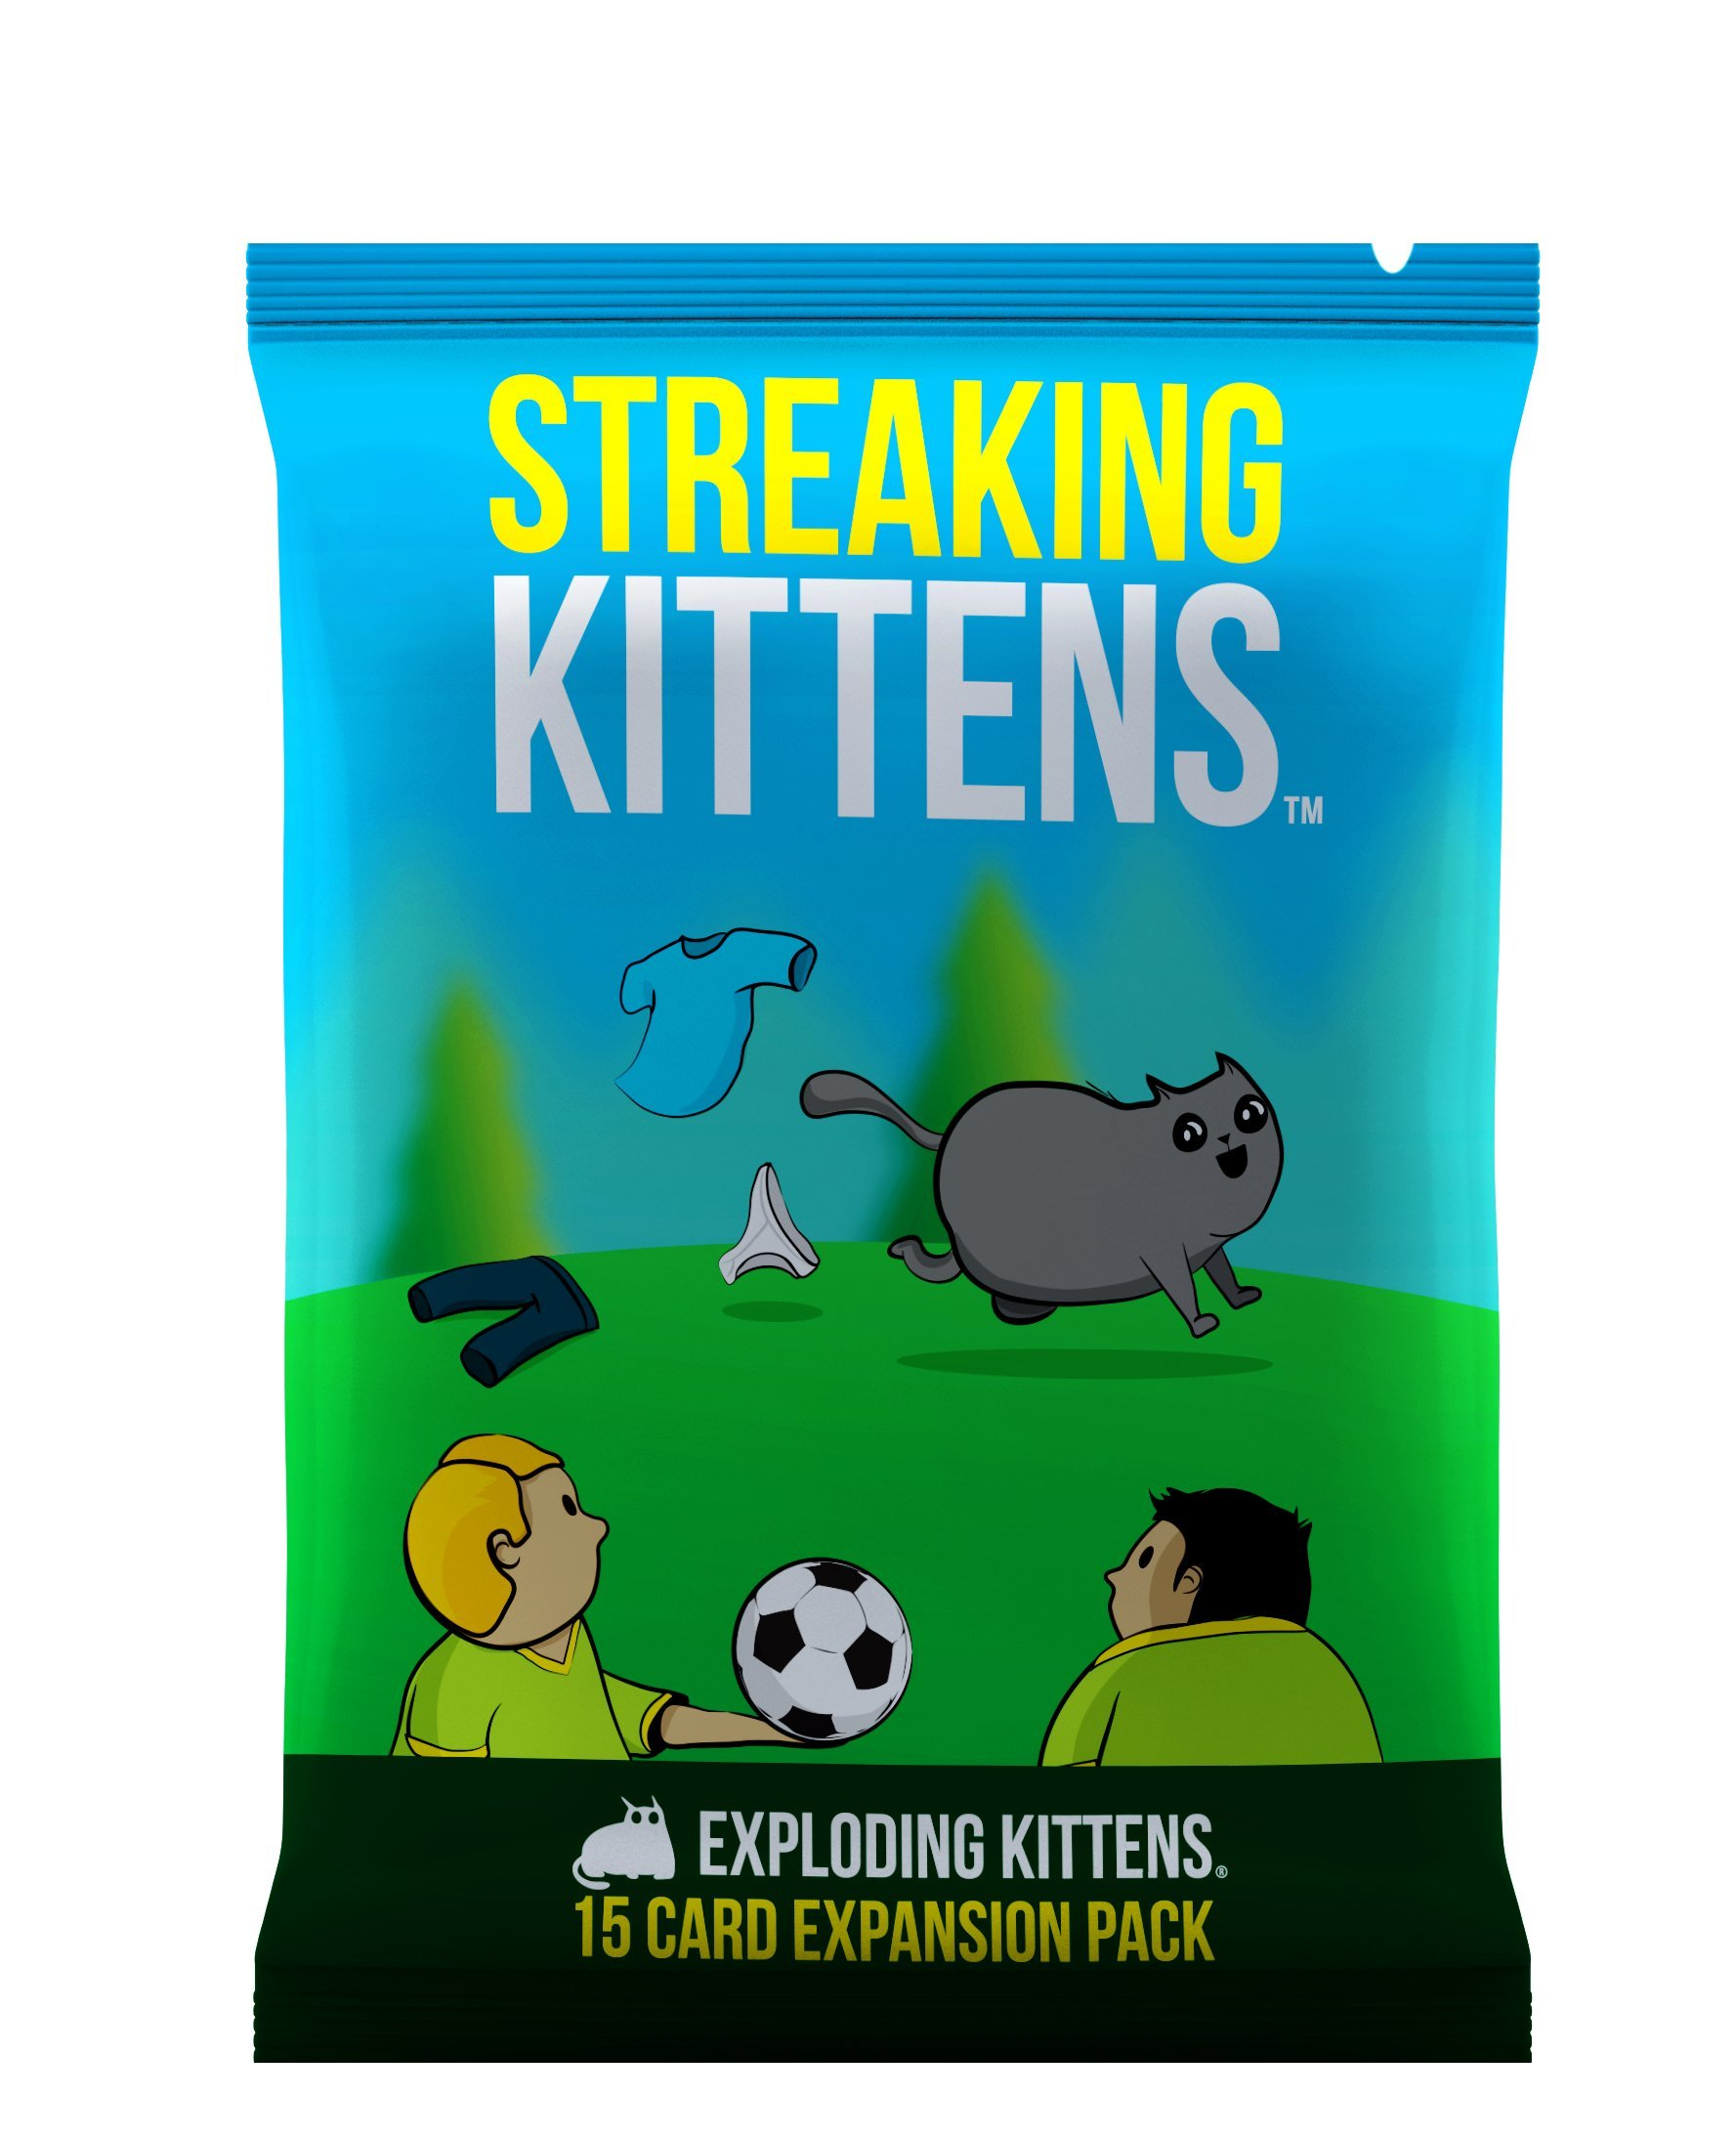 Streaking Kittens: This Is The Second Expansion of Exploding Kittens Card Game - Family Card Game - Card Games For Adults, Teens & Kids